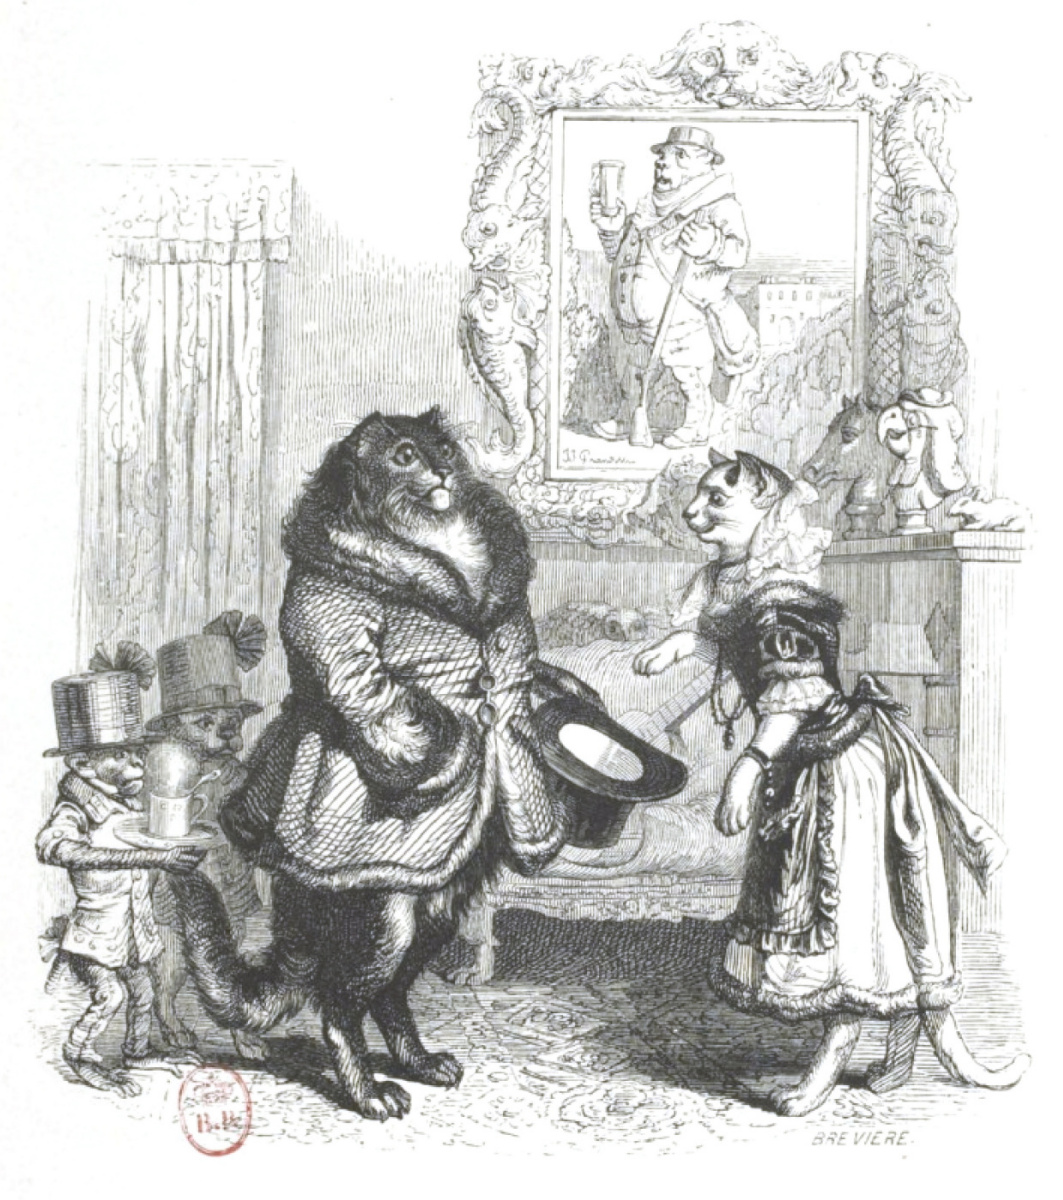 """Jean Inias Isidore (Gerard) Granville. Visit to the matchmaker (I have a wonderful angora in mind). """"Scenes of public and private life of animals"""""""